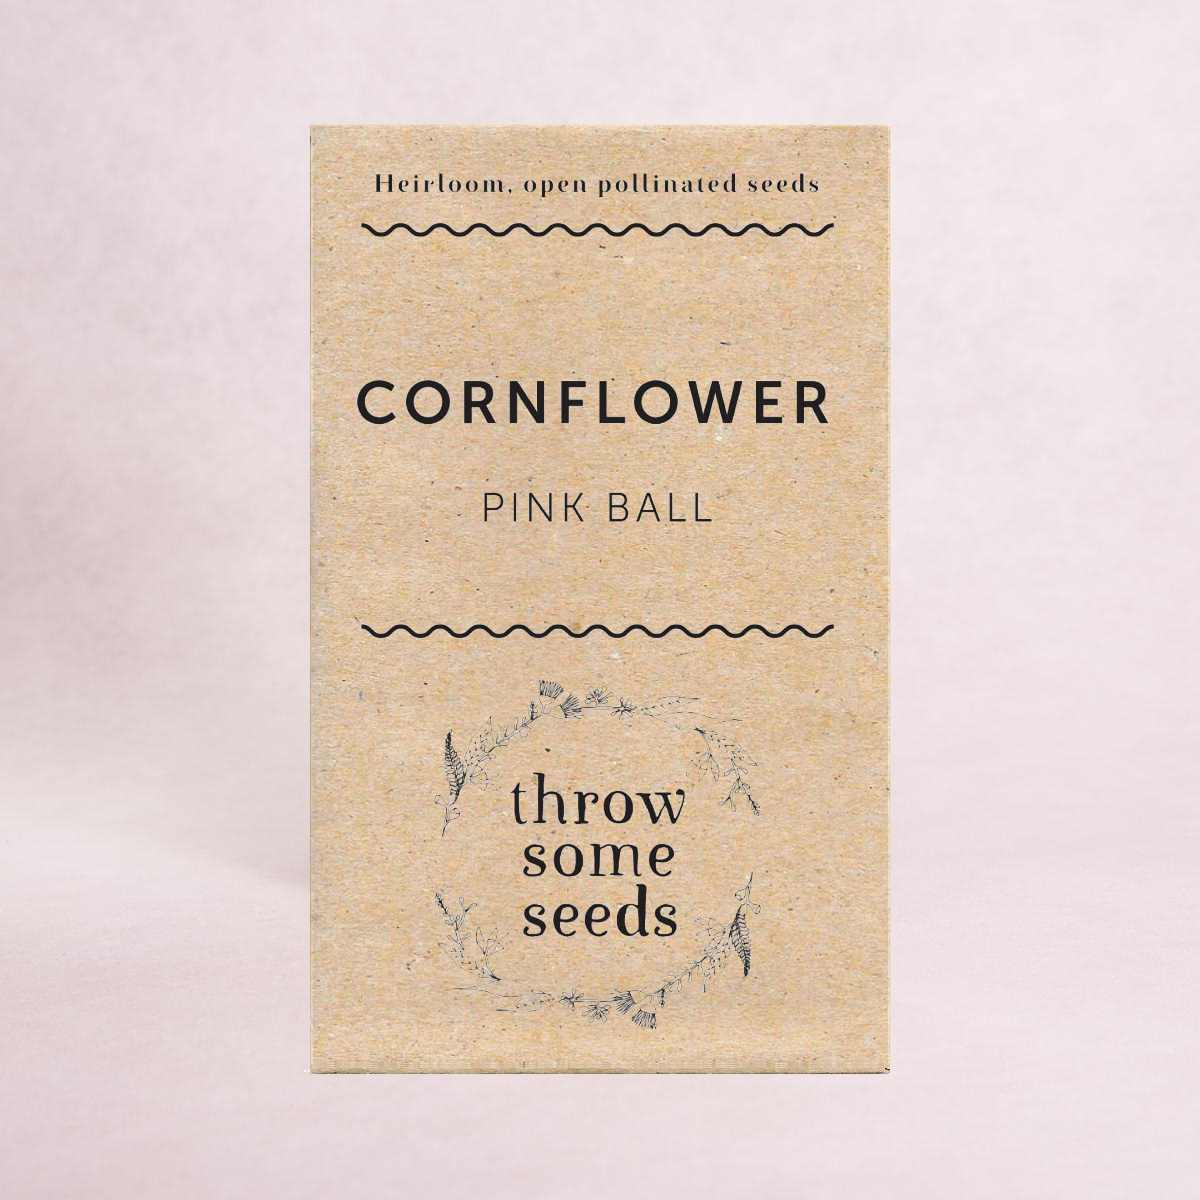 Cornflower (Pink Ball) Seeds - Seeds - Throw Some Seeds - Australian gardening gifts and eco products online!